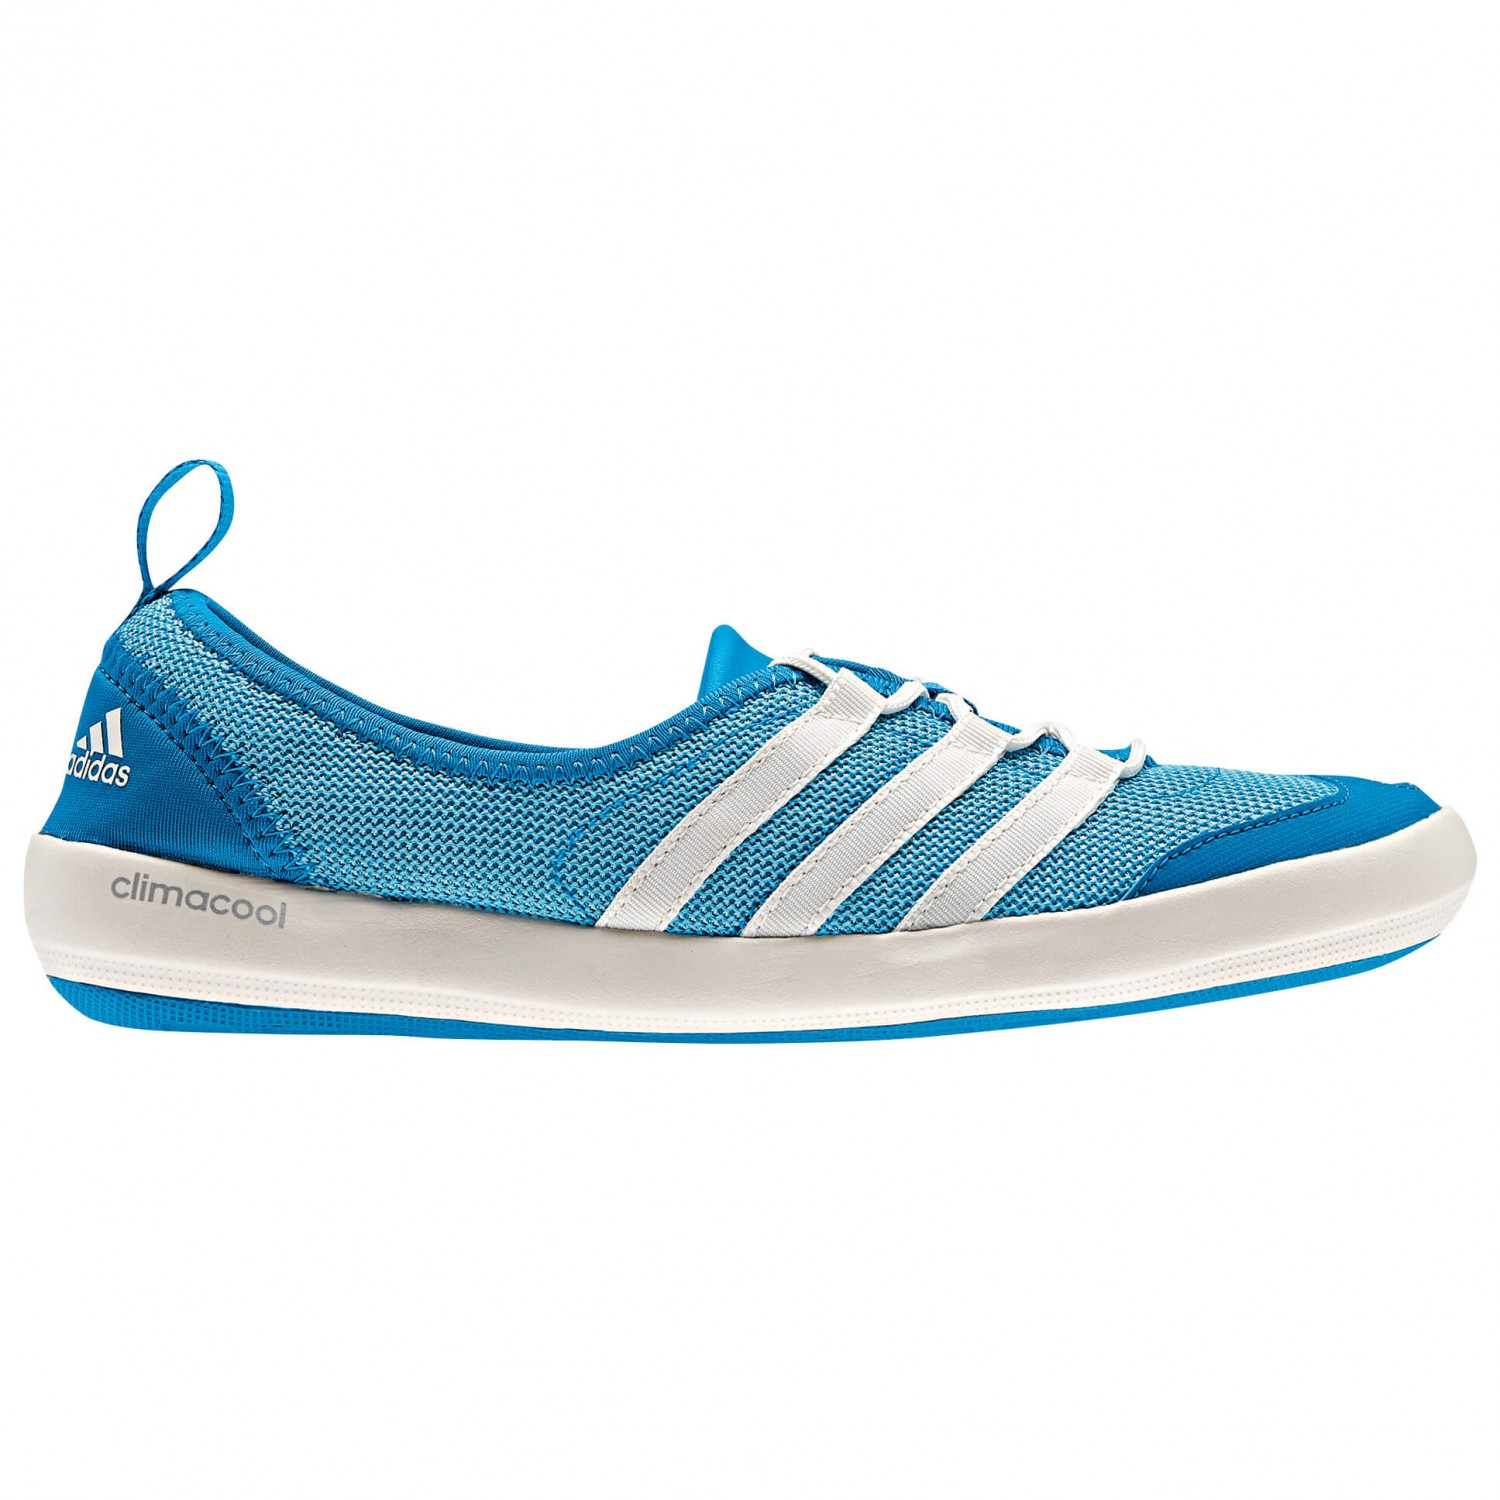 adidas - Women's Climacool Boat Sleek - Multisport shoes